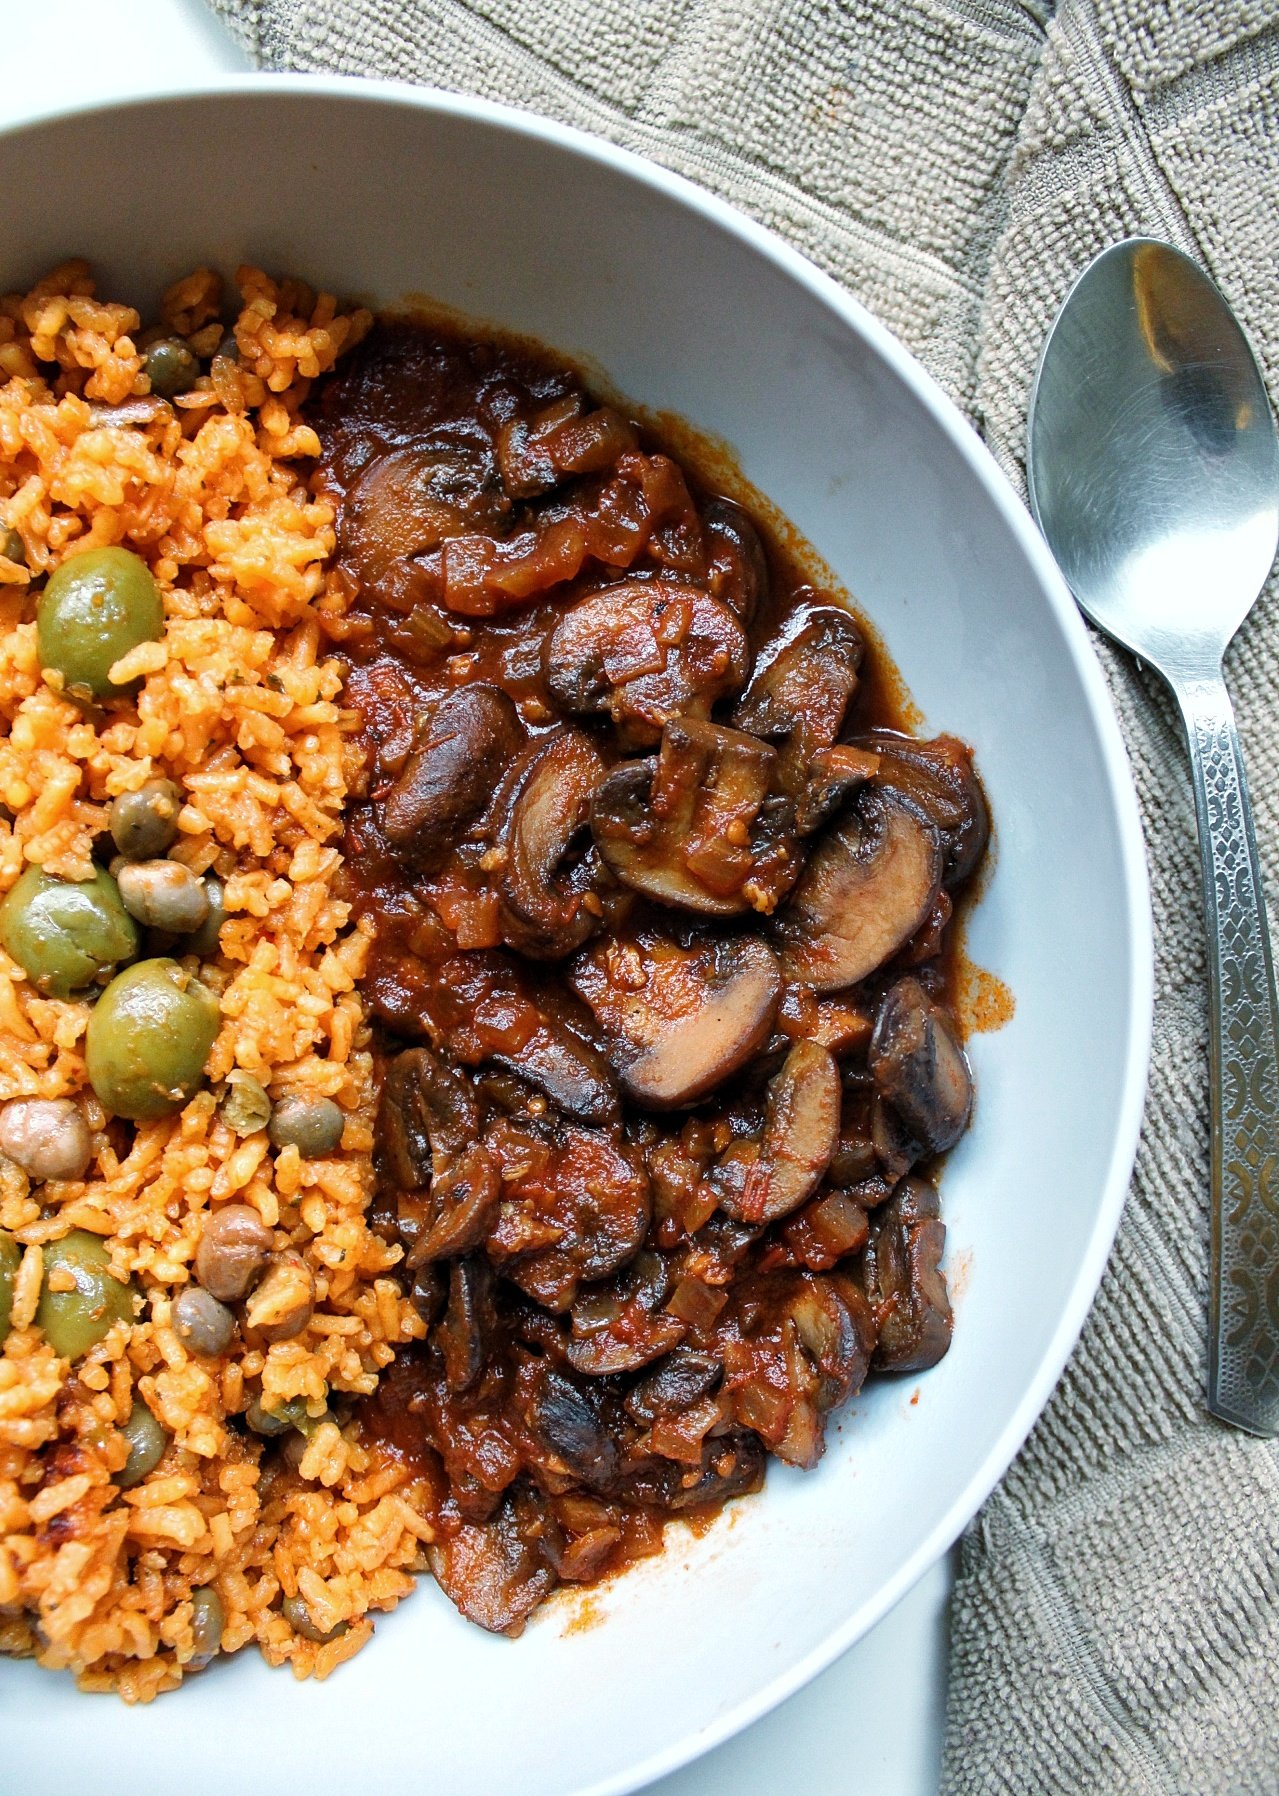 Tomato braised mushrooms with a side of yellow Puerto Rican rice